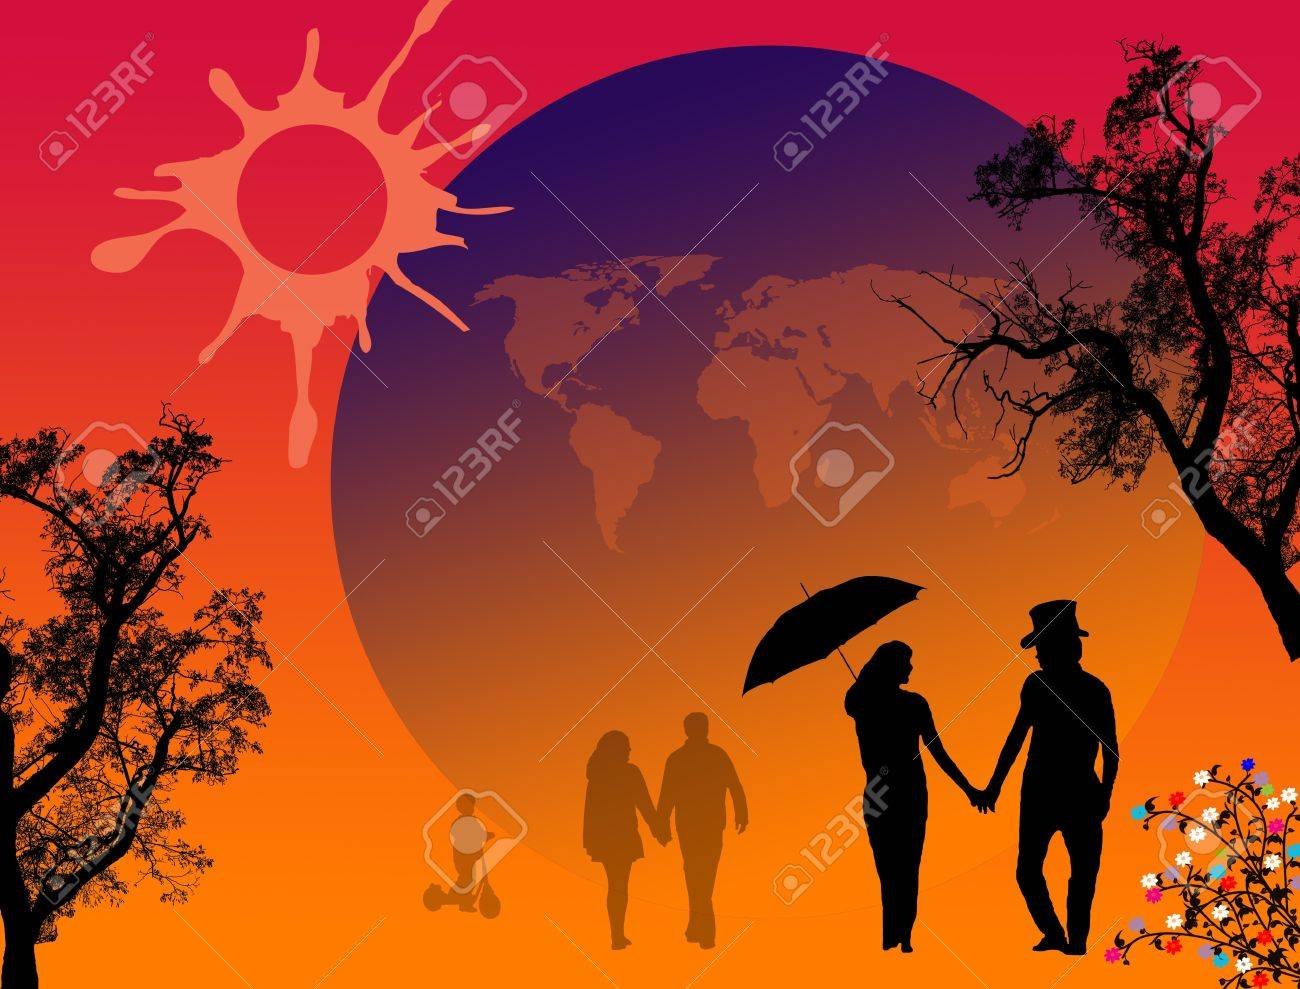 Lovers in a park with umbrella on beautiful place Stock Vector - 15635893